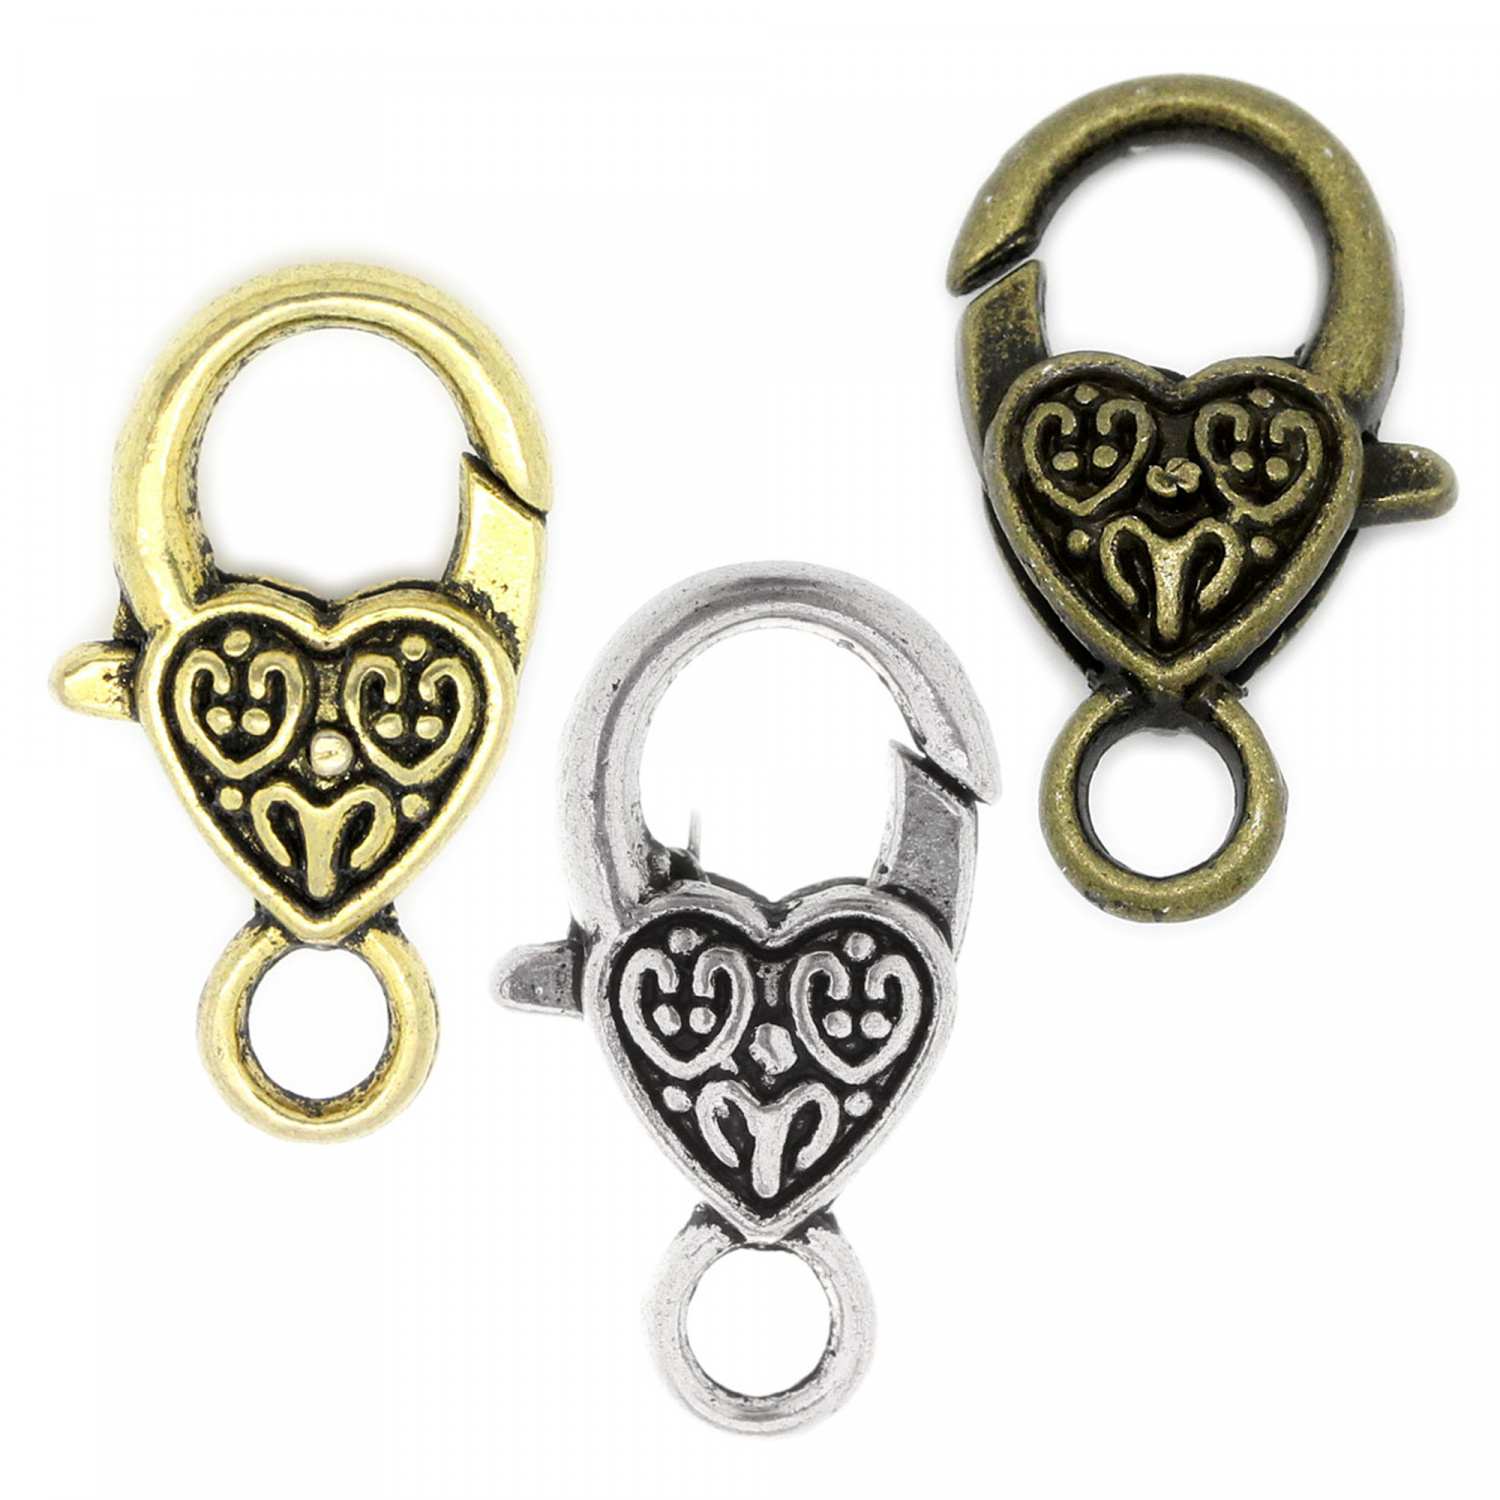 5 Carabiner with Heart 26mm Silver Gold Bronze Chains Closures Closure Love